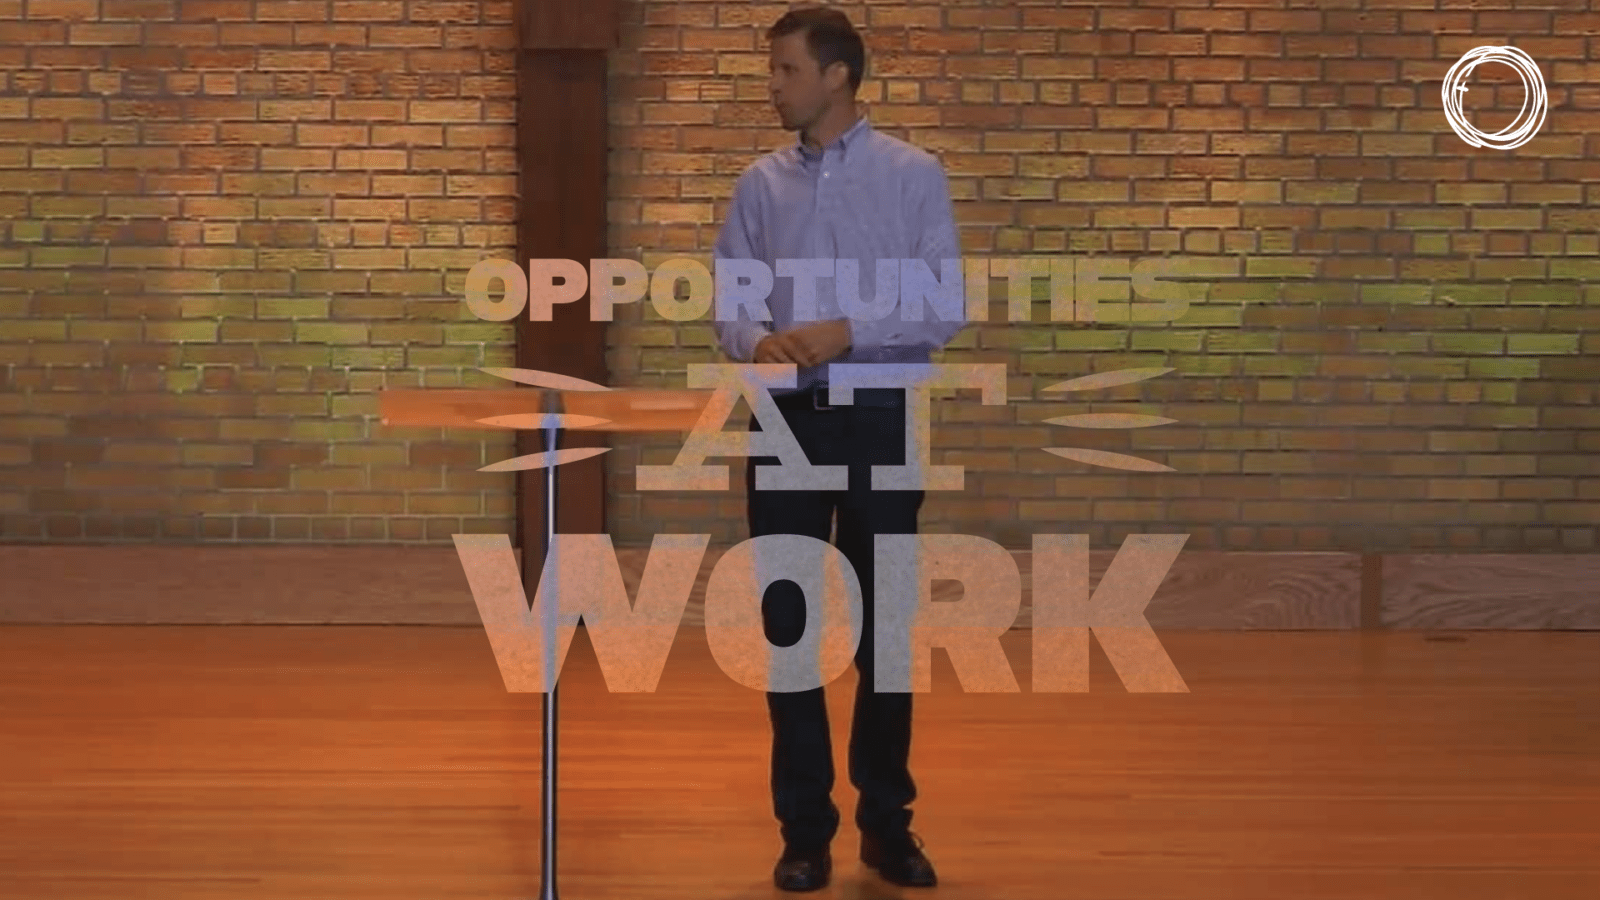 Opportunities at Work